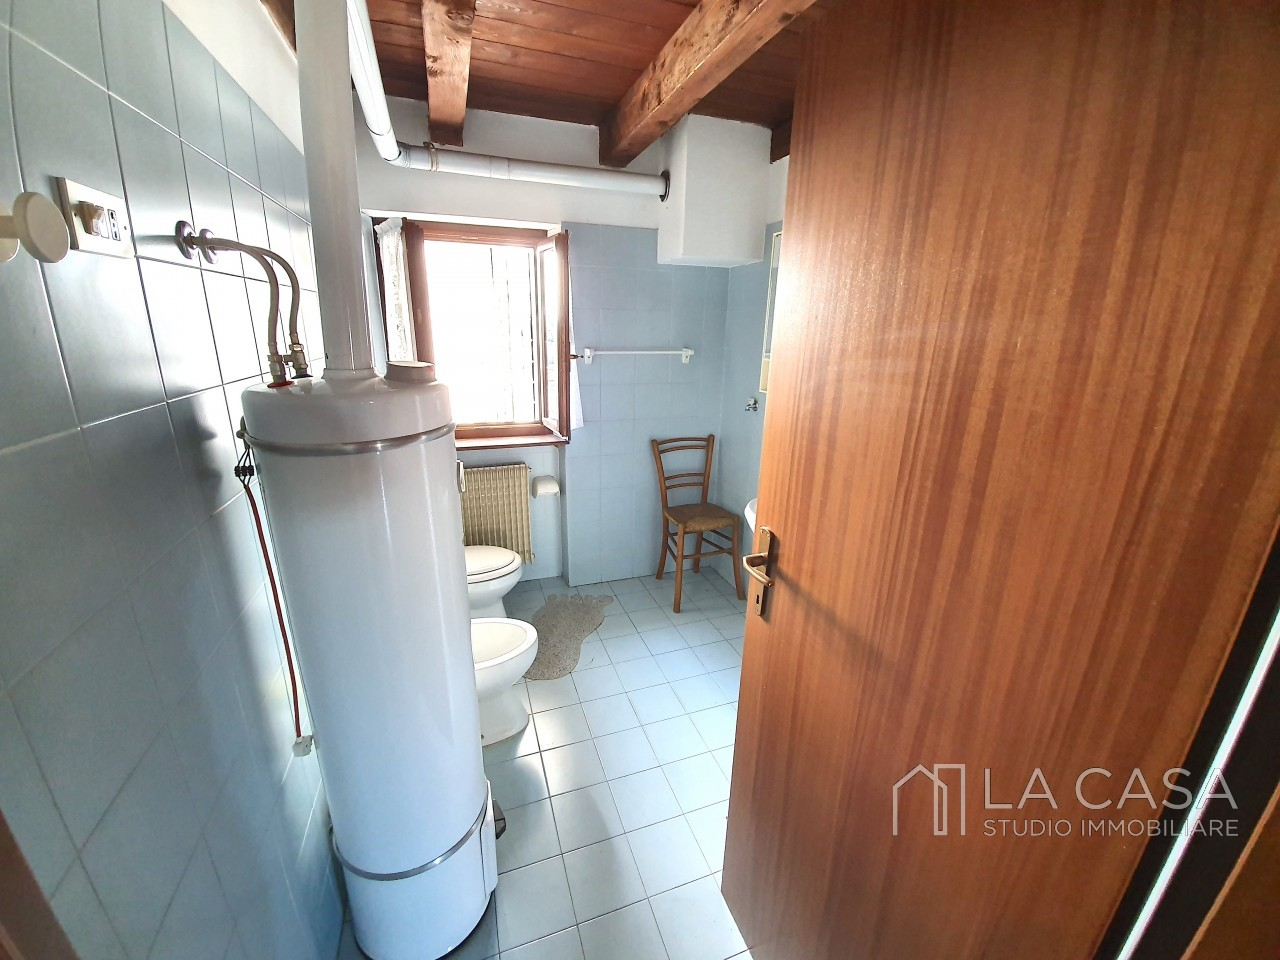 Casa indipendente in Linea - Rif.C6 https://images.gestionaleimmobiliare.it/foto/annunci/191125/2114313/1280x1280/019__20191125_115740_wmk_1.jpg